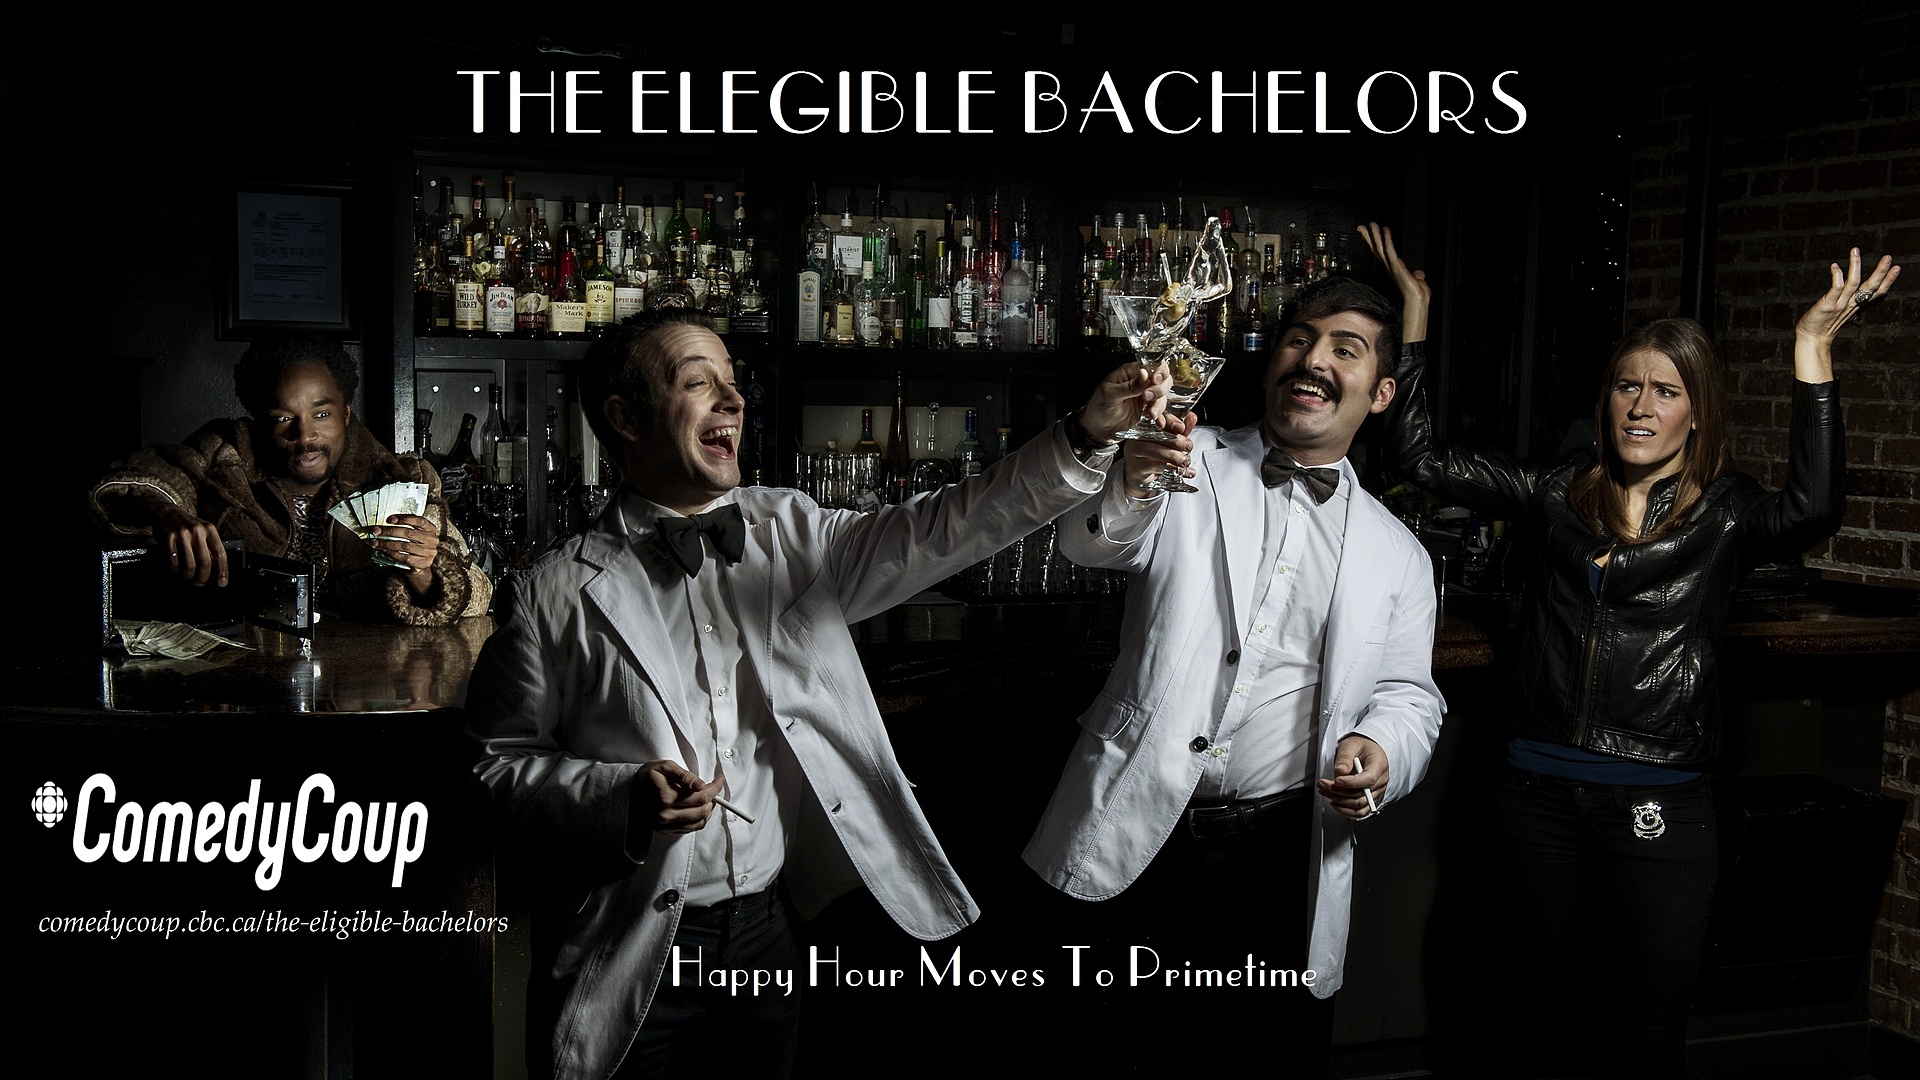 Week 4 Key It: Poster A The Eligible Bachelors